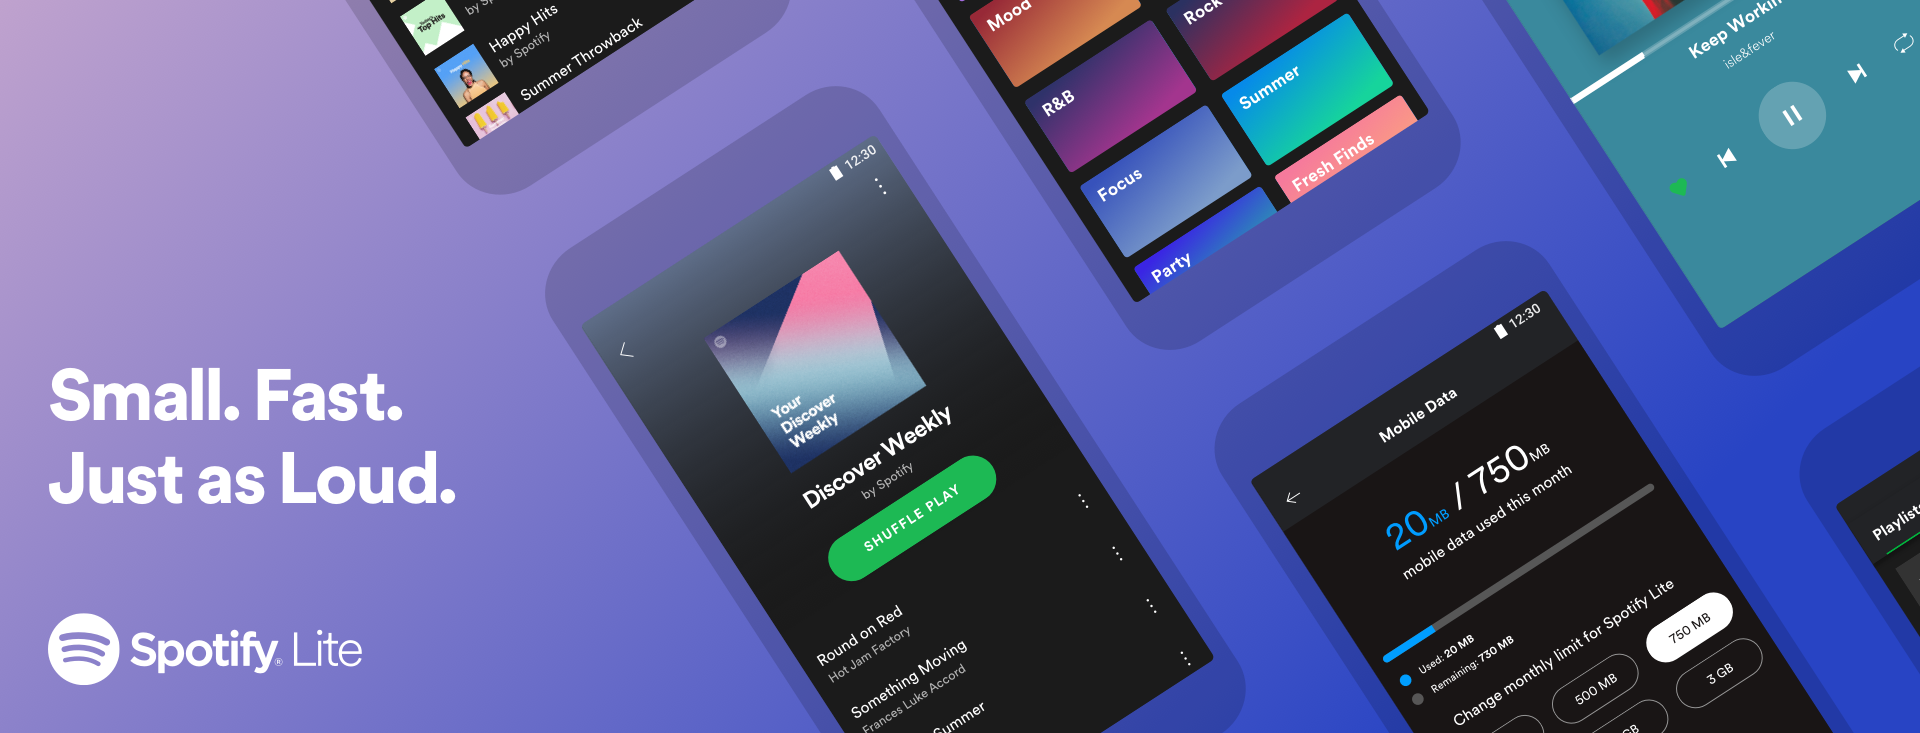 Spotify Premium 8.5.17.676 Crack Final + Mod Lite 2019 Free Download